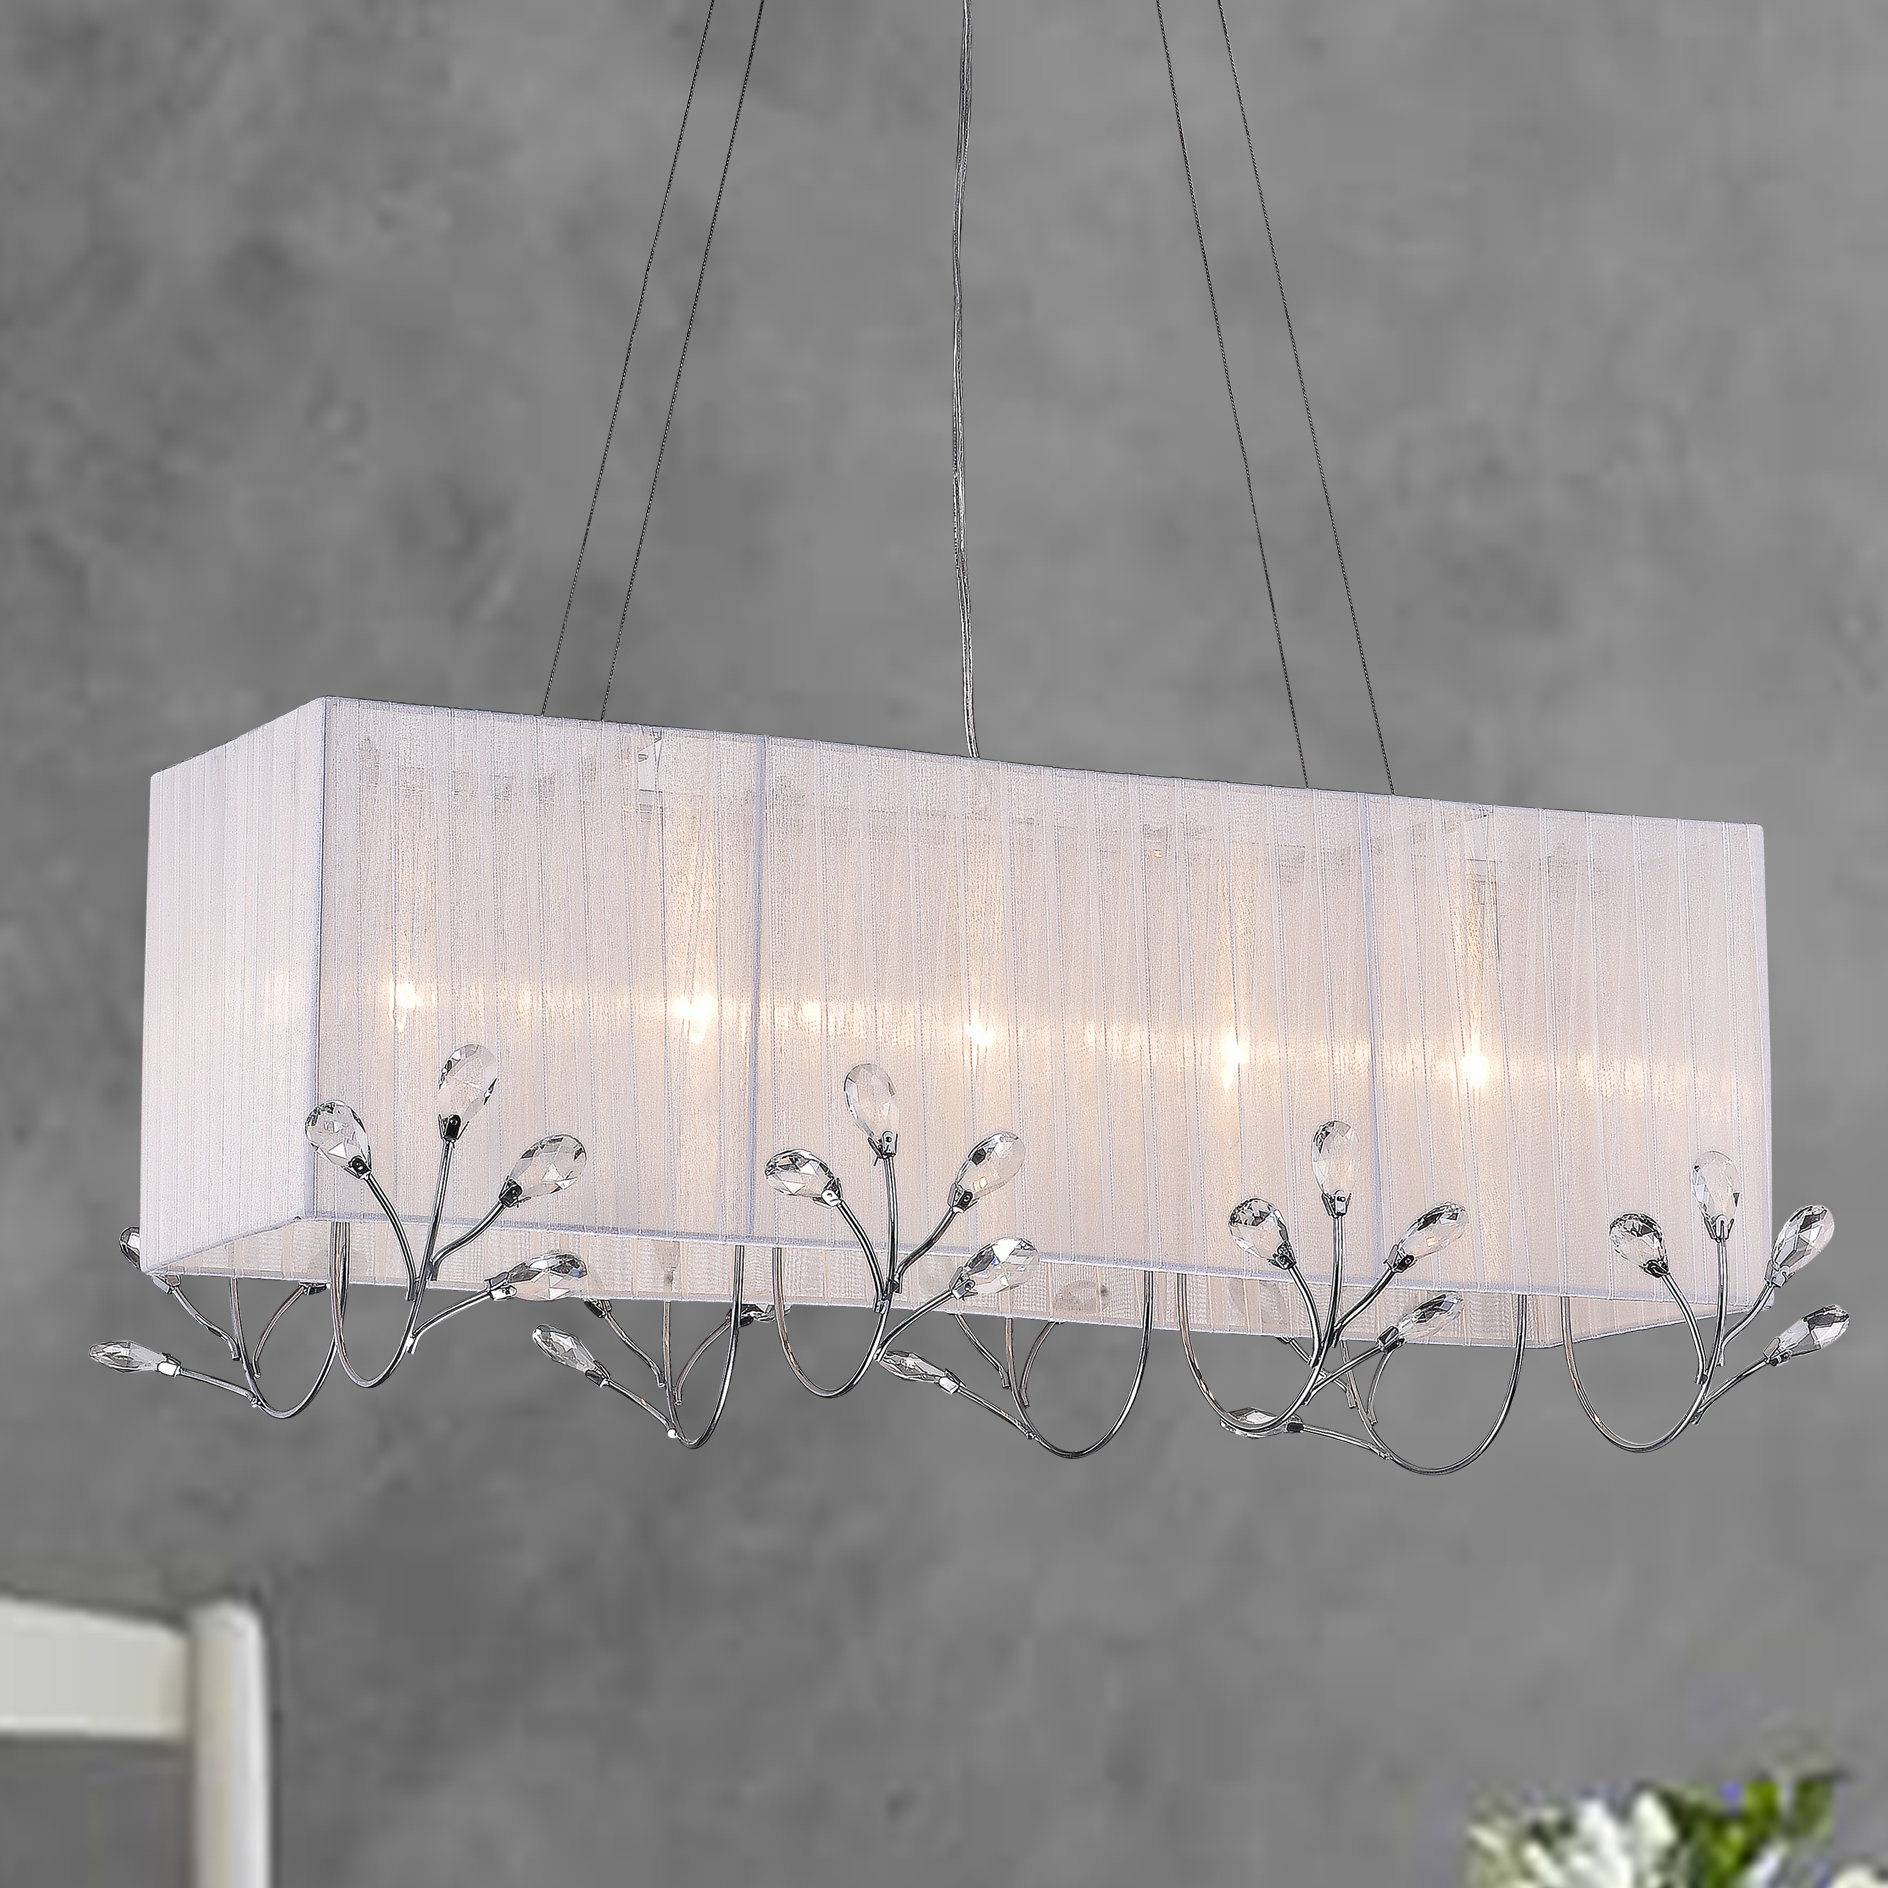 [%Square & Rectangular Chandeliers Sale – Up To 65% Off Until With Most Recently Released Hewitt 4 Light Square Chandeliers|Hewitt 4 Light Square Chandeliers Within Current Square & Rectangular Chandeliers Sale – Up To 65% Off Until|Fashionable Hewitt 4 Light Square Chandeliers With Square & Rectangular Chandeliers Sale – Up To 65% Off Until|Newest Square & Rectangular Chandeliers Sale – Up To 65% Off Until Inside Hewitt 4 Light Square Chandeliers%] (View 10 of 20)